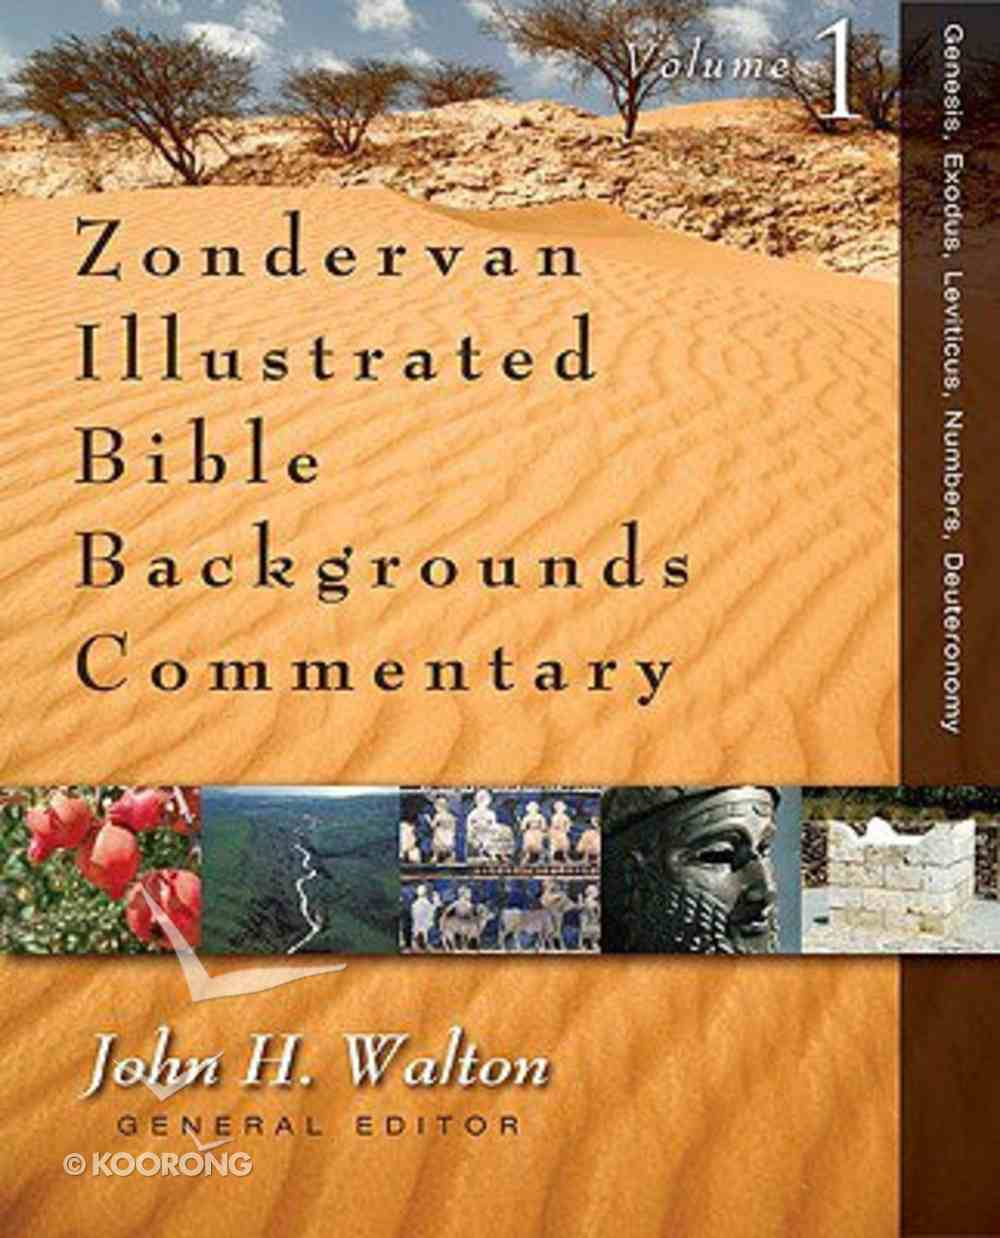 Zondervan Illustrated Bible Backgrounds OT Commentary Set (5 Vols) (Zondervan Illustrated Bible Backgrounds Commentary Series) Hardback